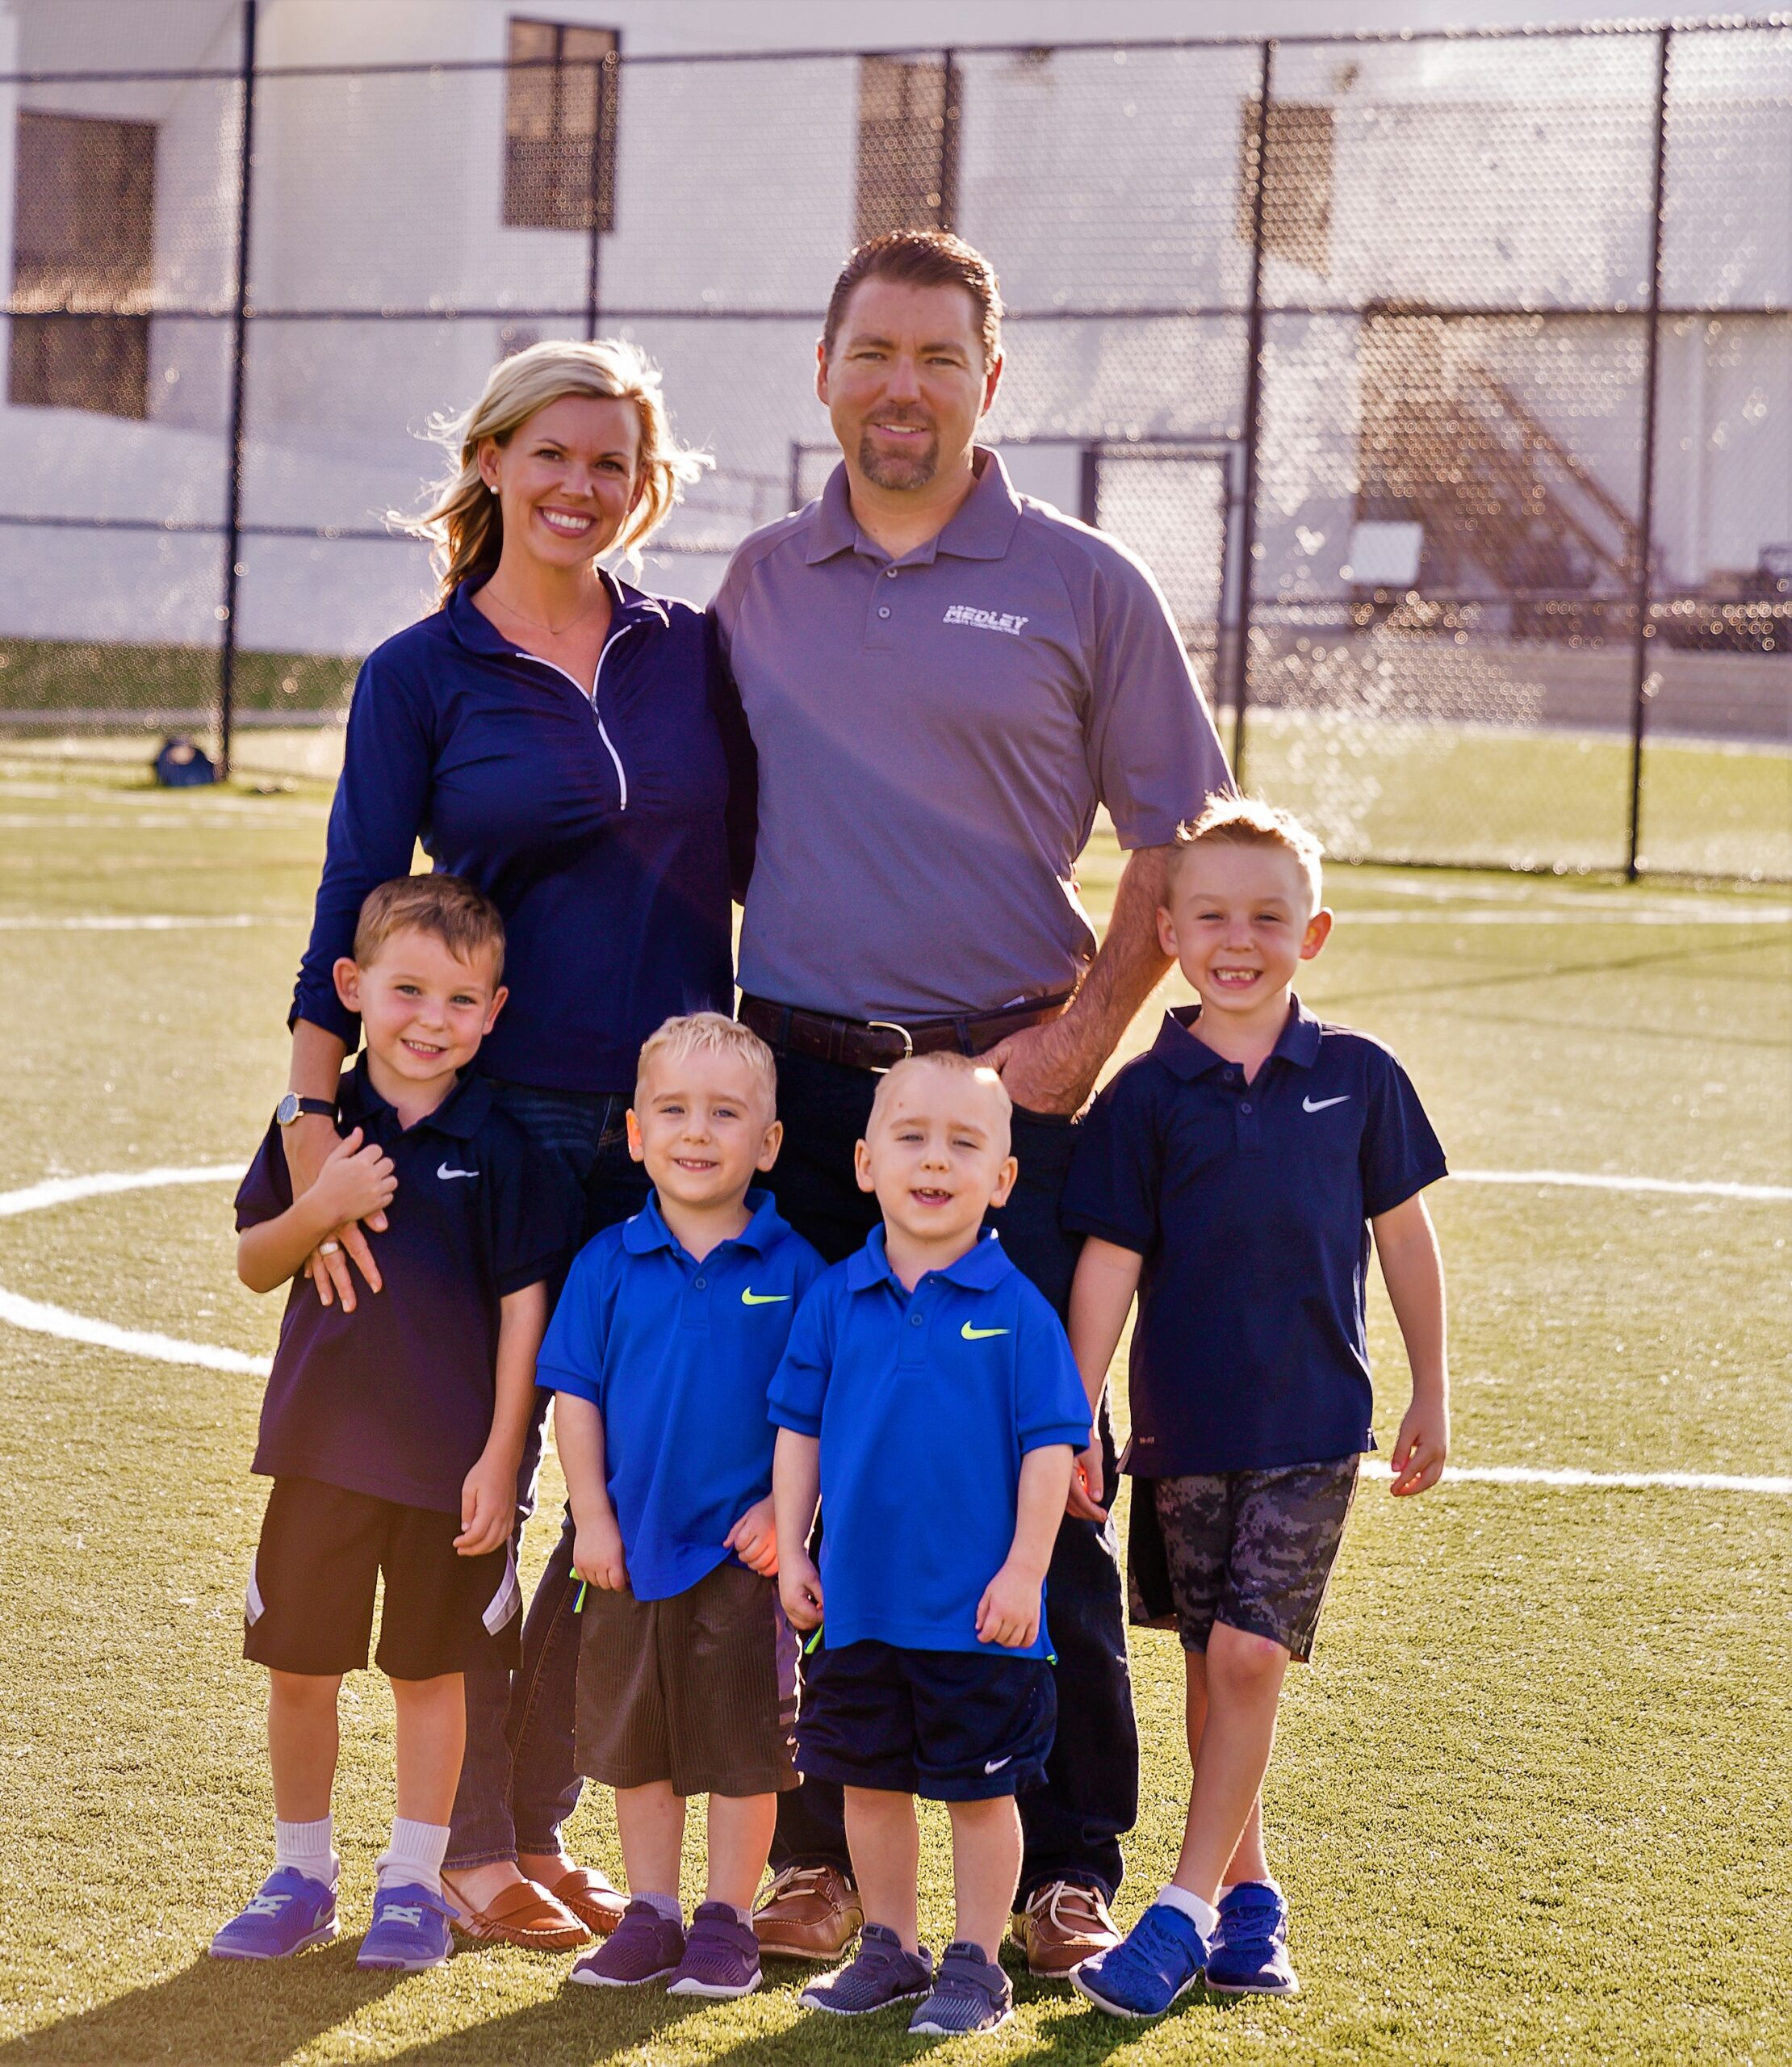 standing for photo: family of owner Erik Medley, his wife Mindy and their four boys (all under age 10, includes a set of twins)